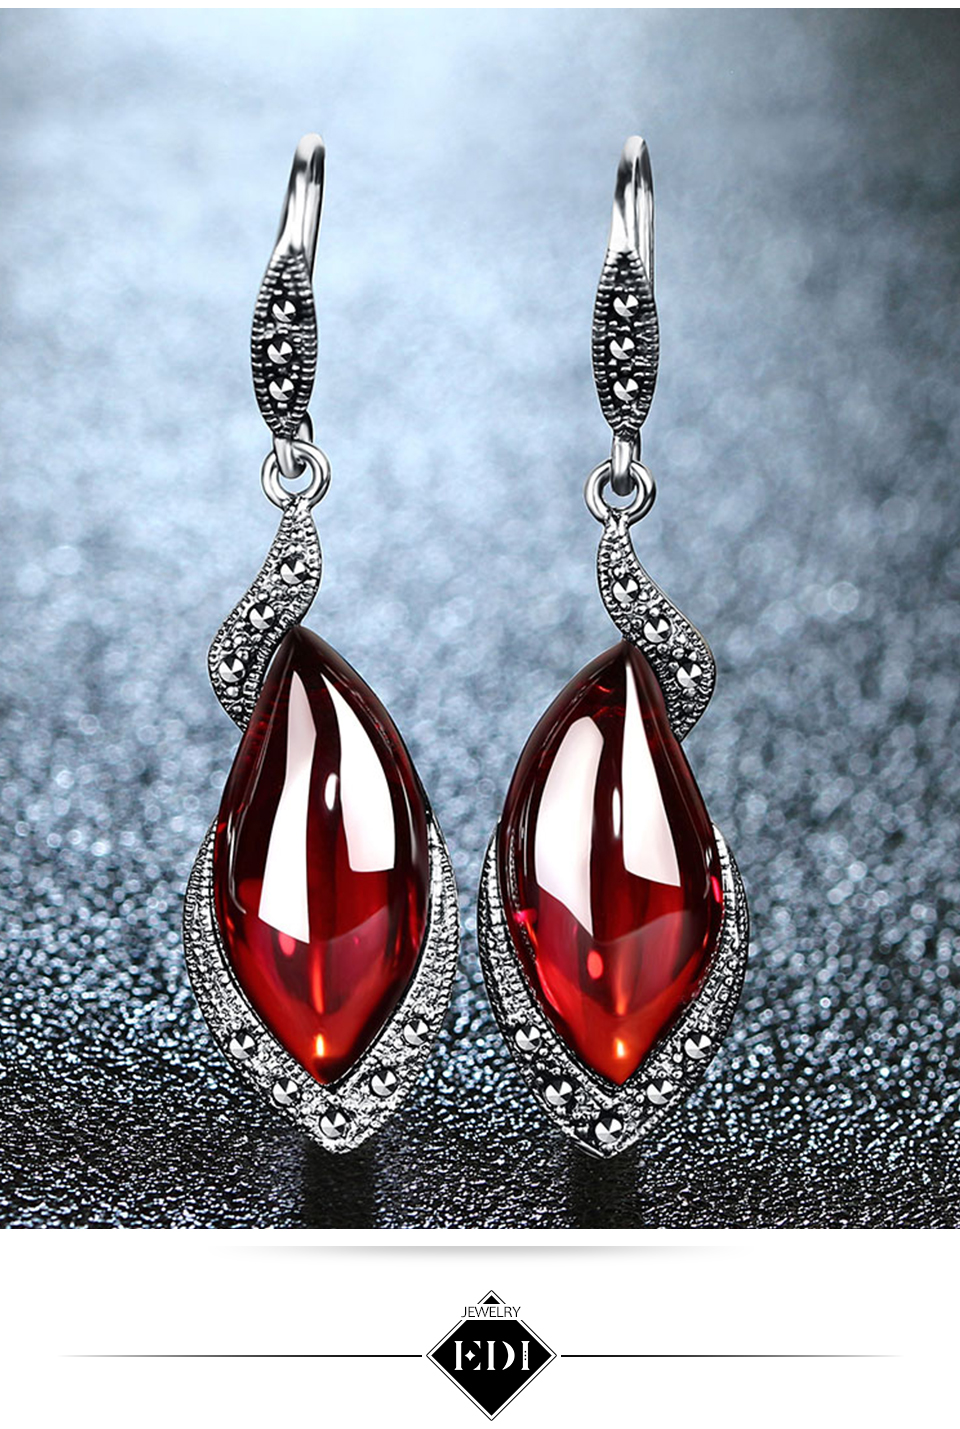 Garnet Pendant Necklace Gemstone Drop Earrings For Women 100% 925 Sterling Silver Jewelry Sets